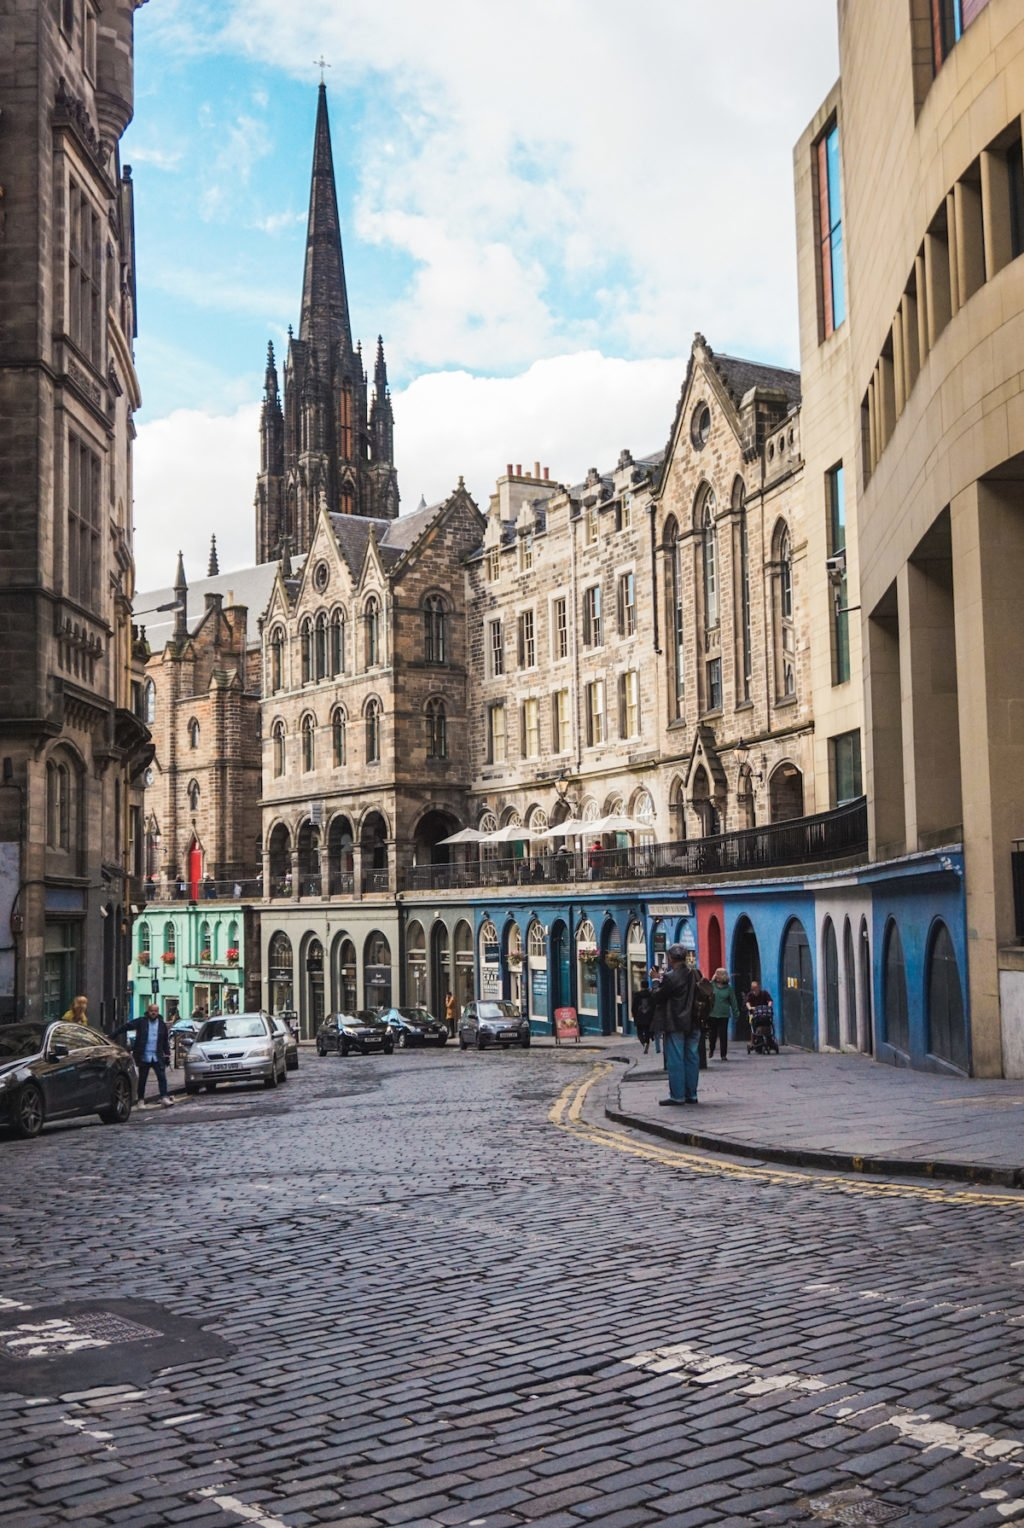 Streets of Edinburgh, Scotland • The 3 Best Free Tours in Edinburgh, Scotland | The Wanderful Me